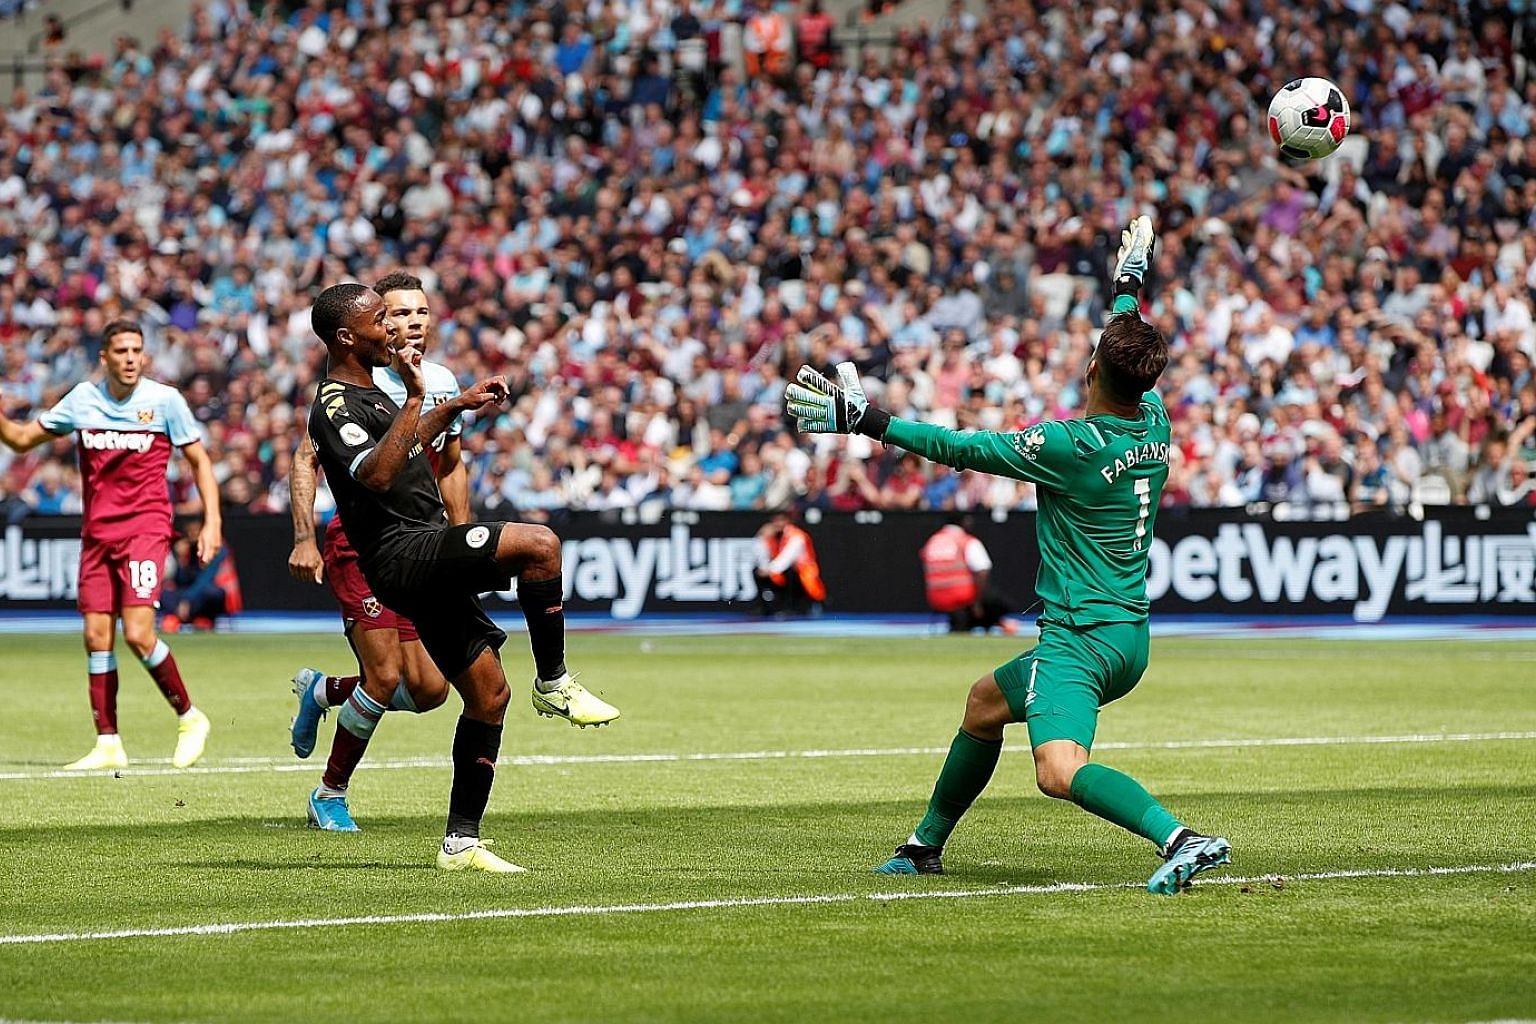 Raheem Sterling lobbing West Ham goalkeeper Lukasz Fabianski for Manchester City's third goal, and his second, at the London Stadium. The English forward later completed his hat-trick as the champions hit the Hammers for five in a one-sided league op